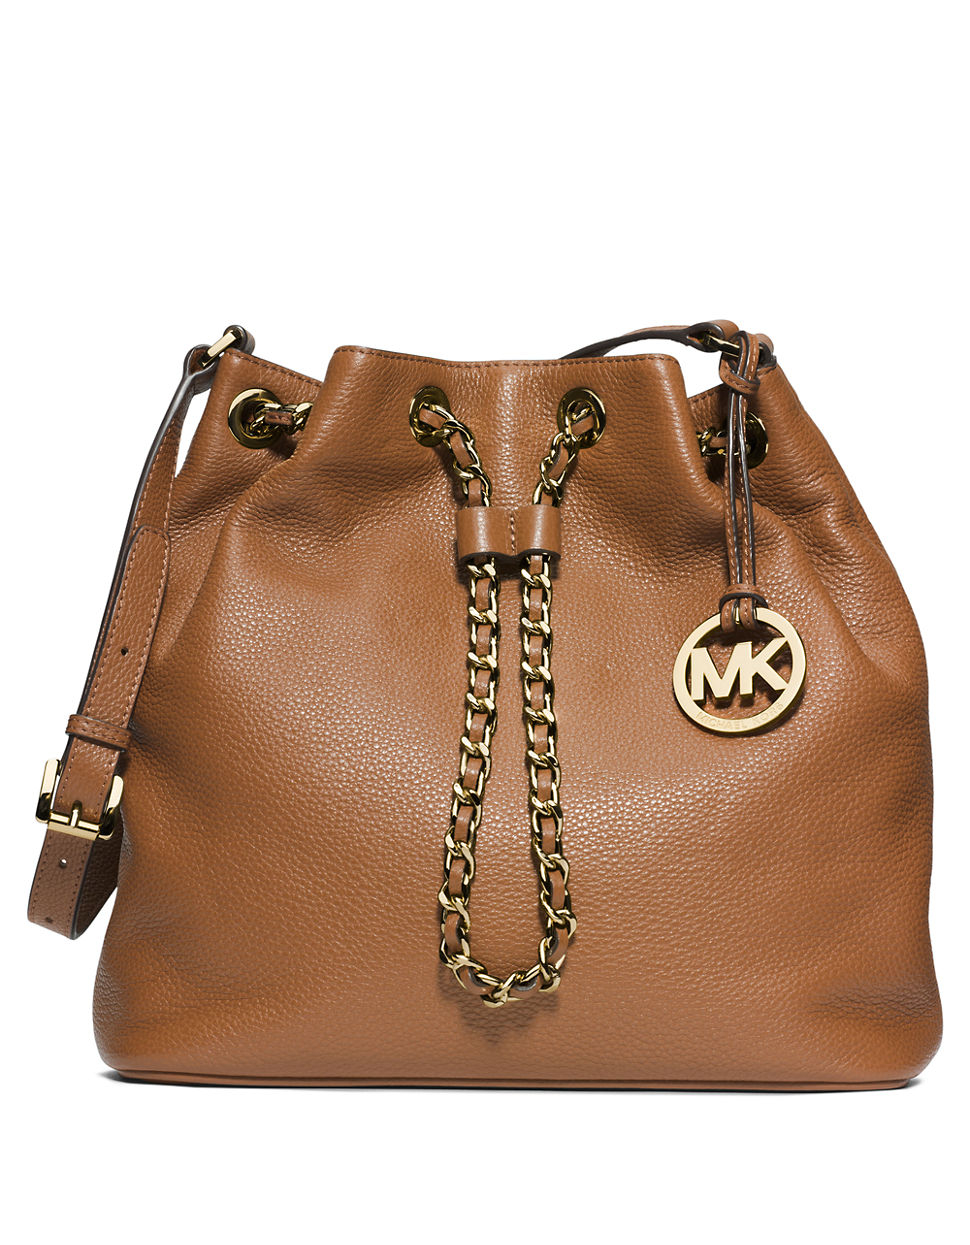 2c211ce2305a00 Michael Kors Small Drawstring Handbags | Stanford Center for ...